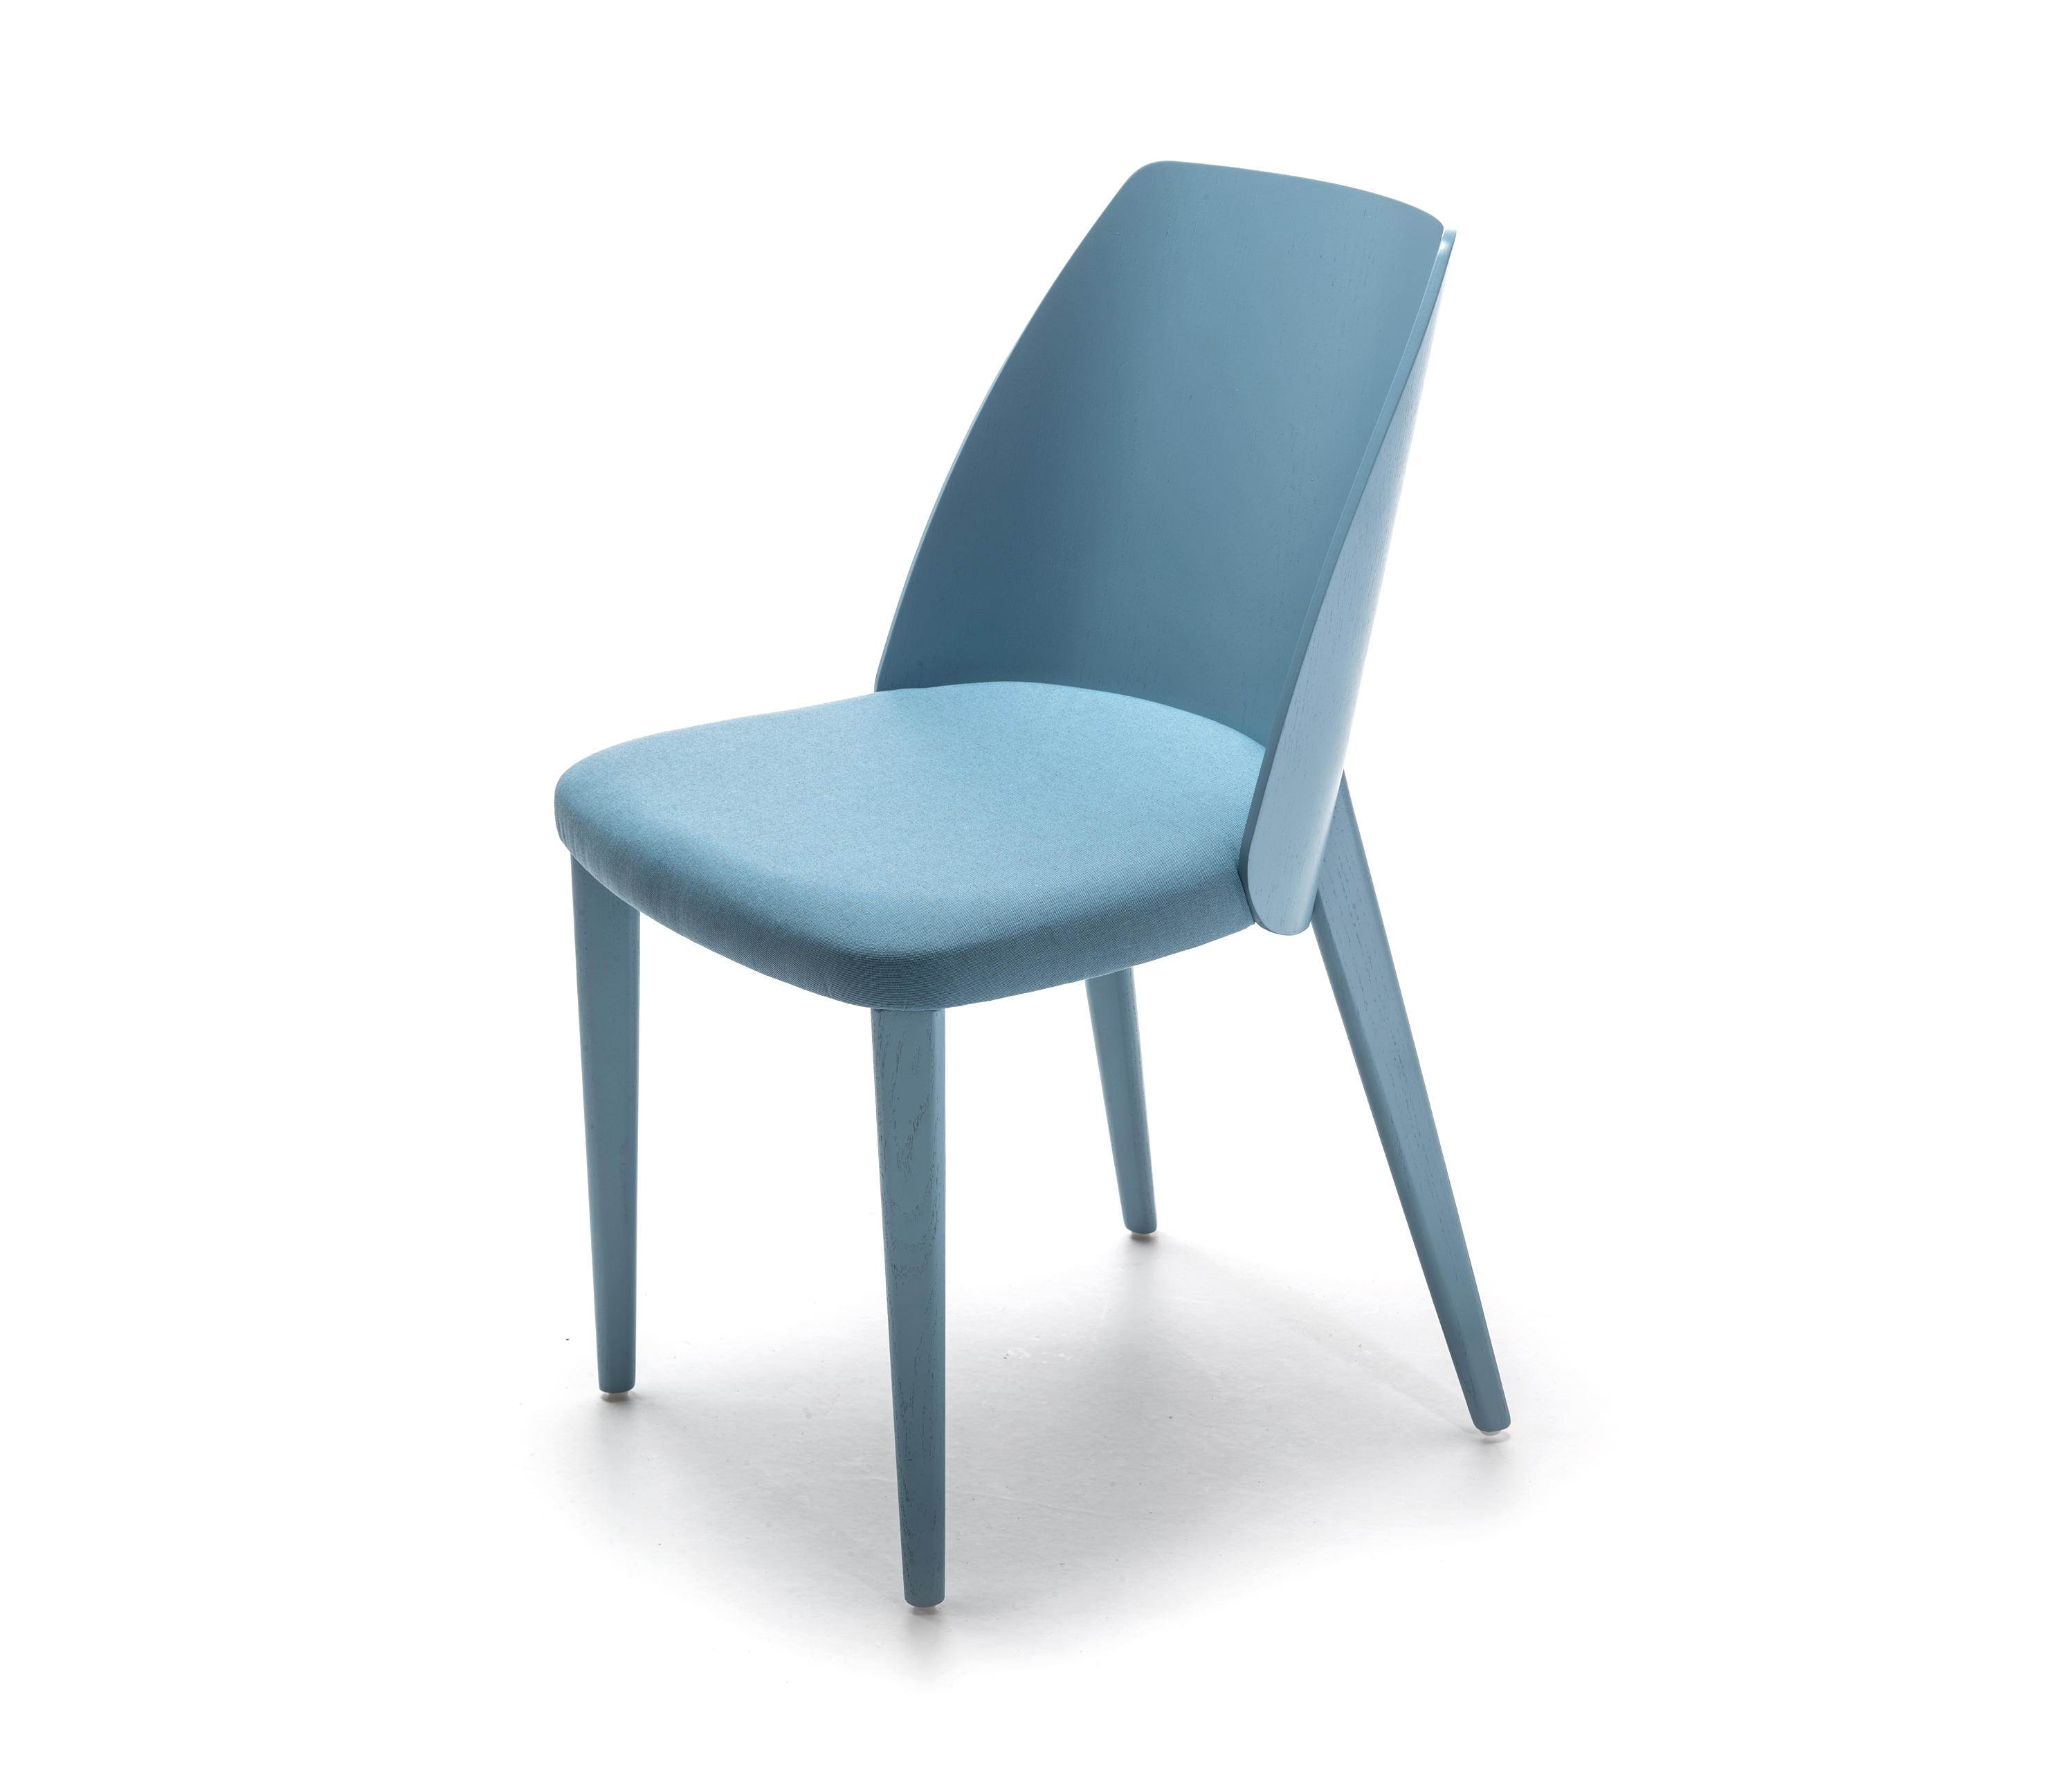 shell chair chairs from bross architonic